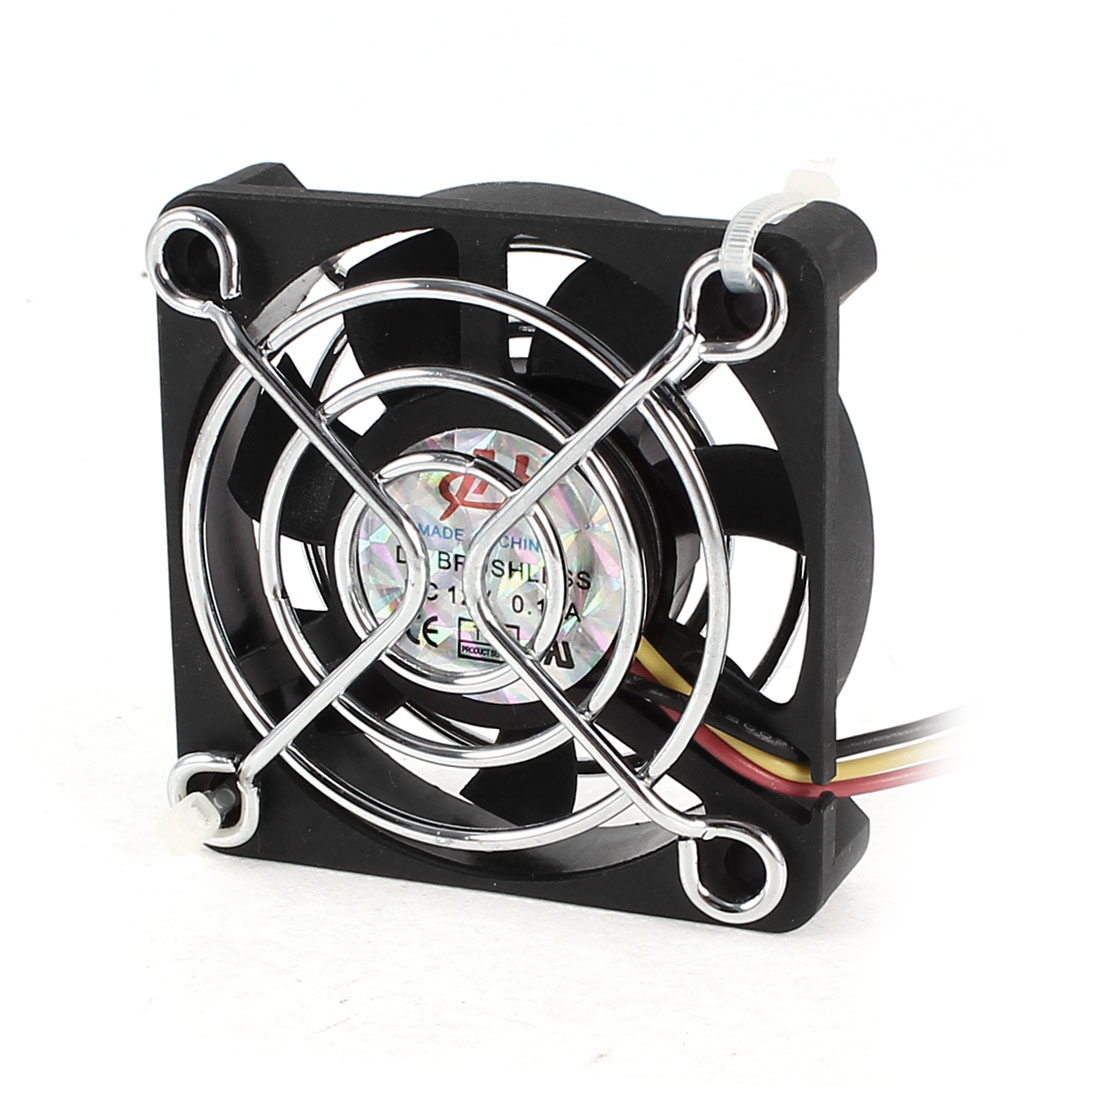 DC 12V 0.1A Metal Grill 50mmx10mm Cooling Fan Cooler Black for Computer Case